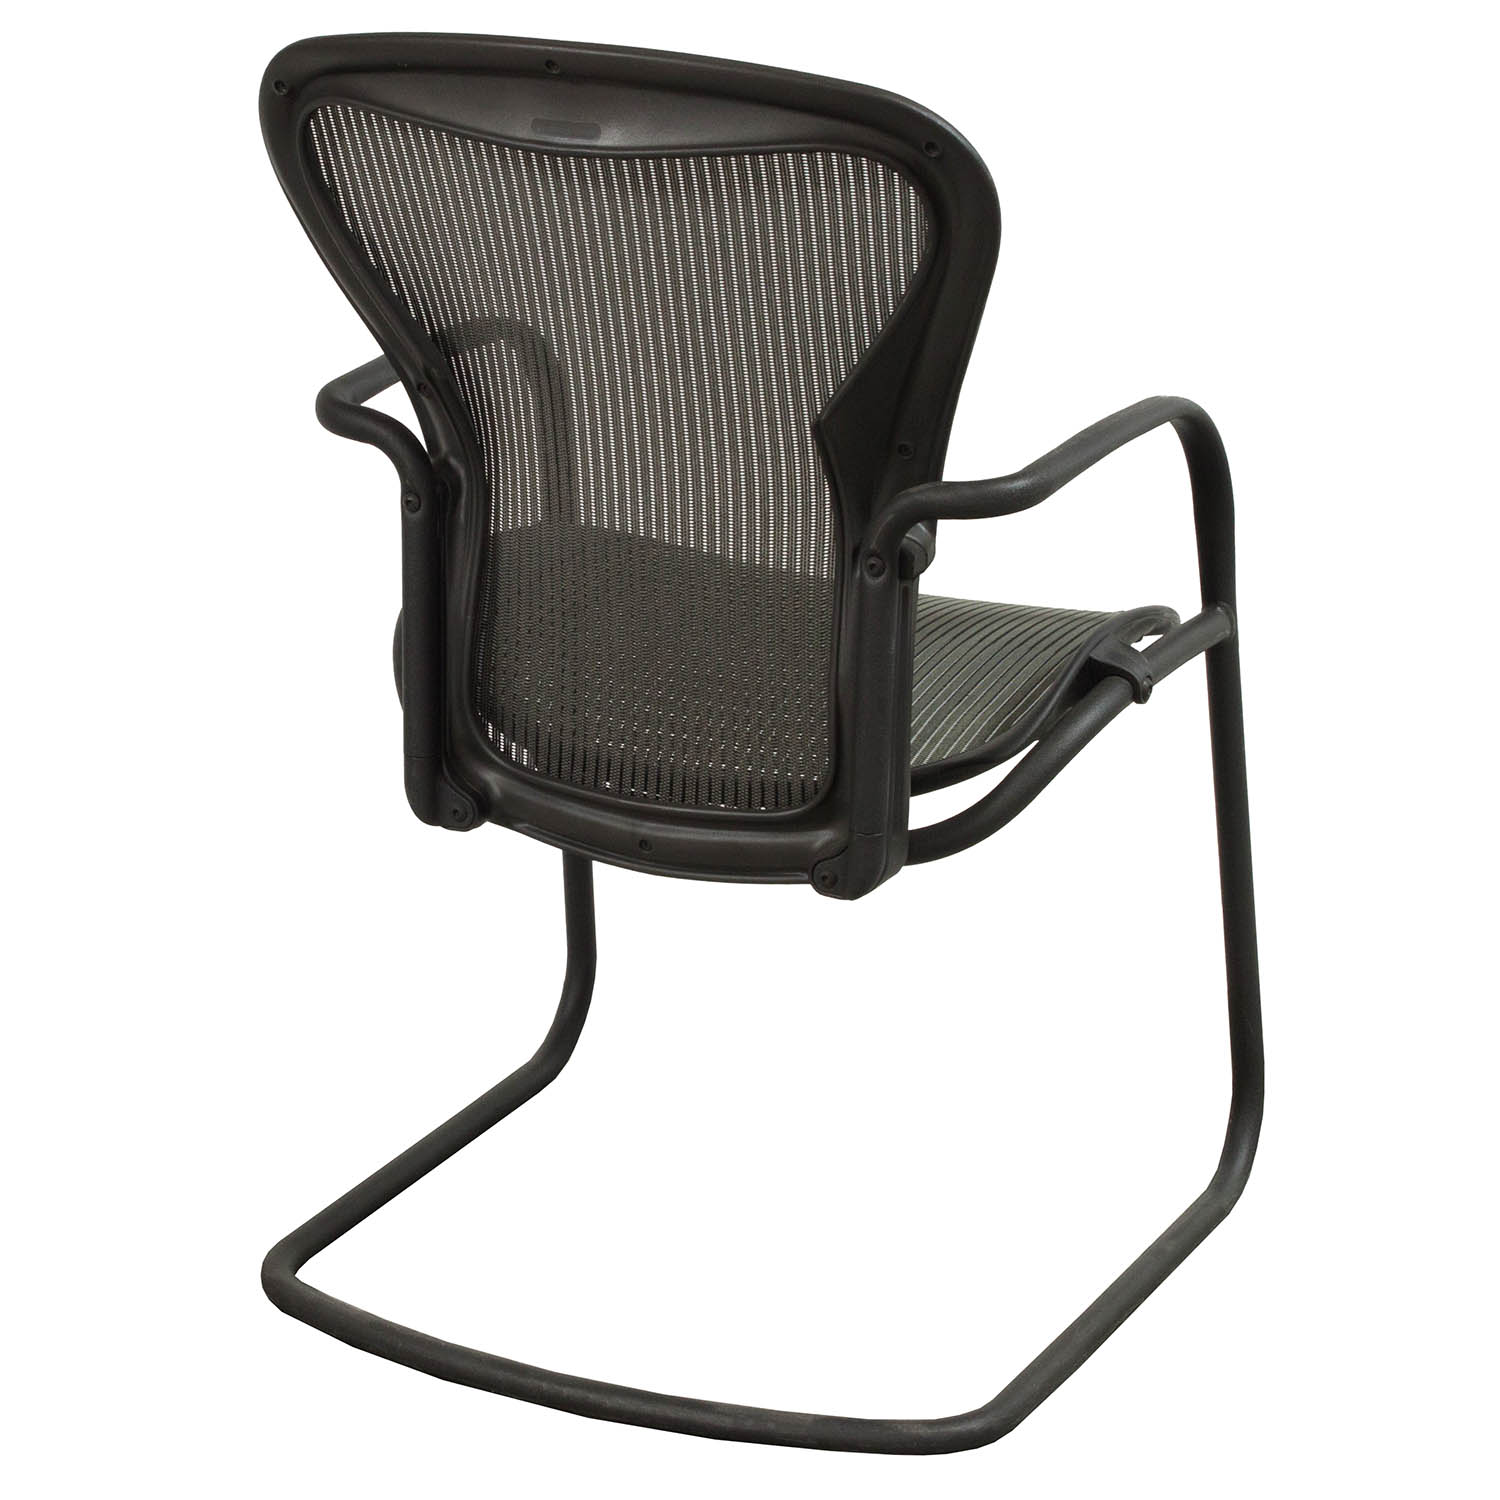 aeron chair accessories yoga exercises for elderly herman miller used side nickel national